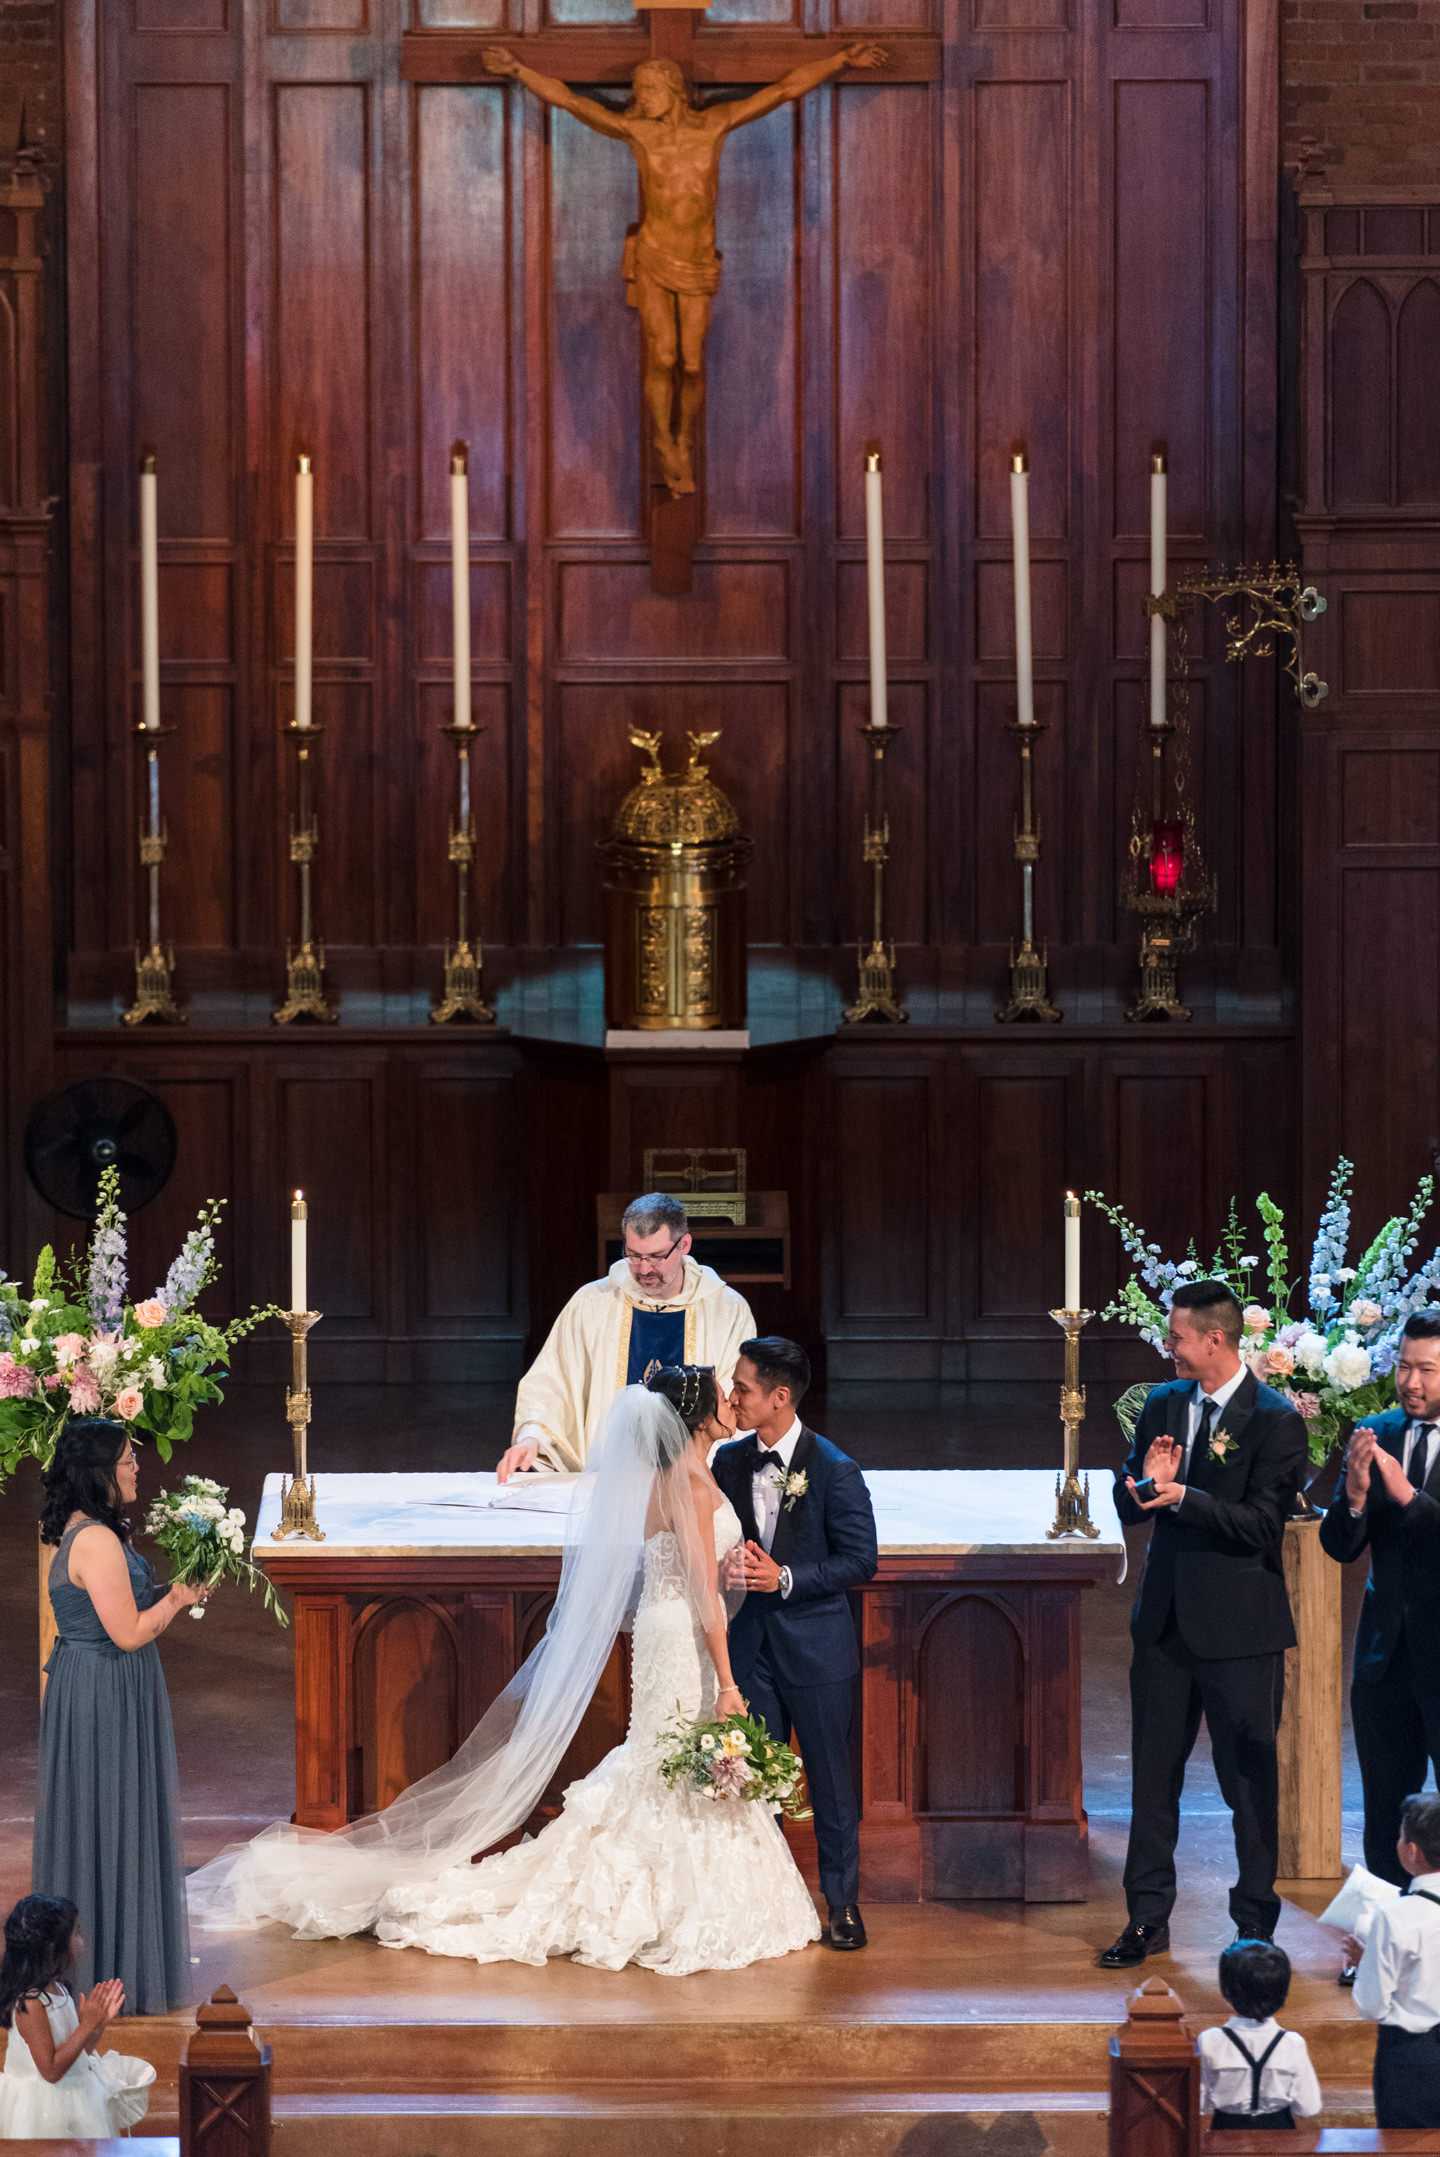 Asian Bride and Groom Kiss during Wedding Ceremony